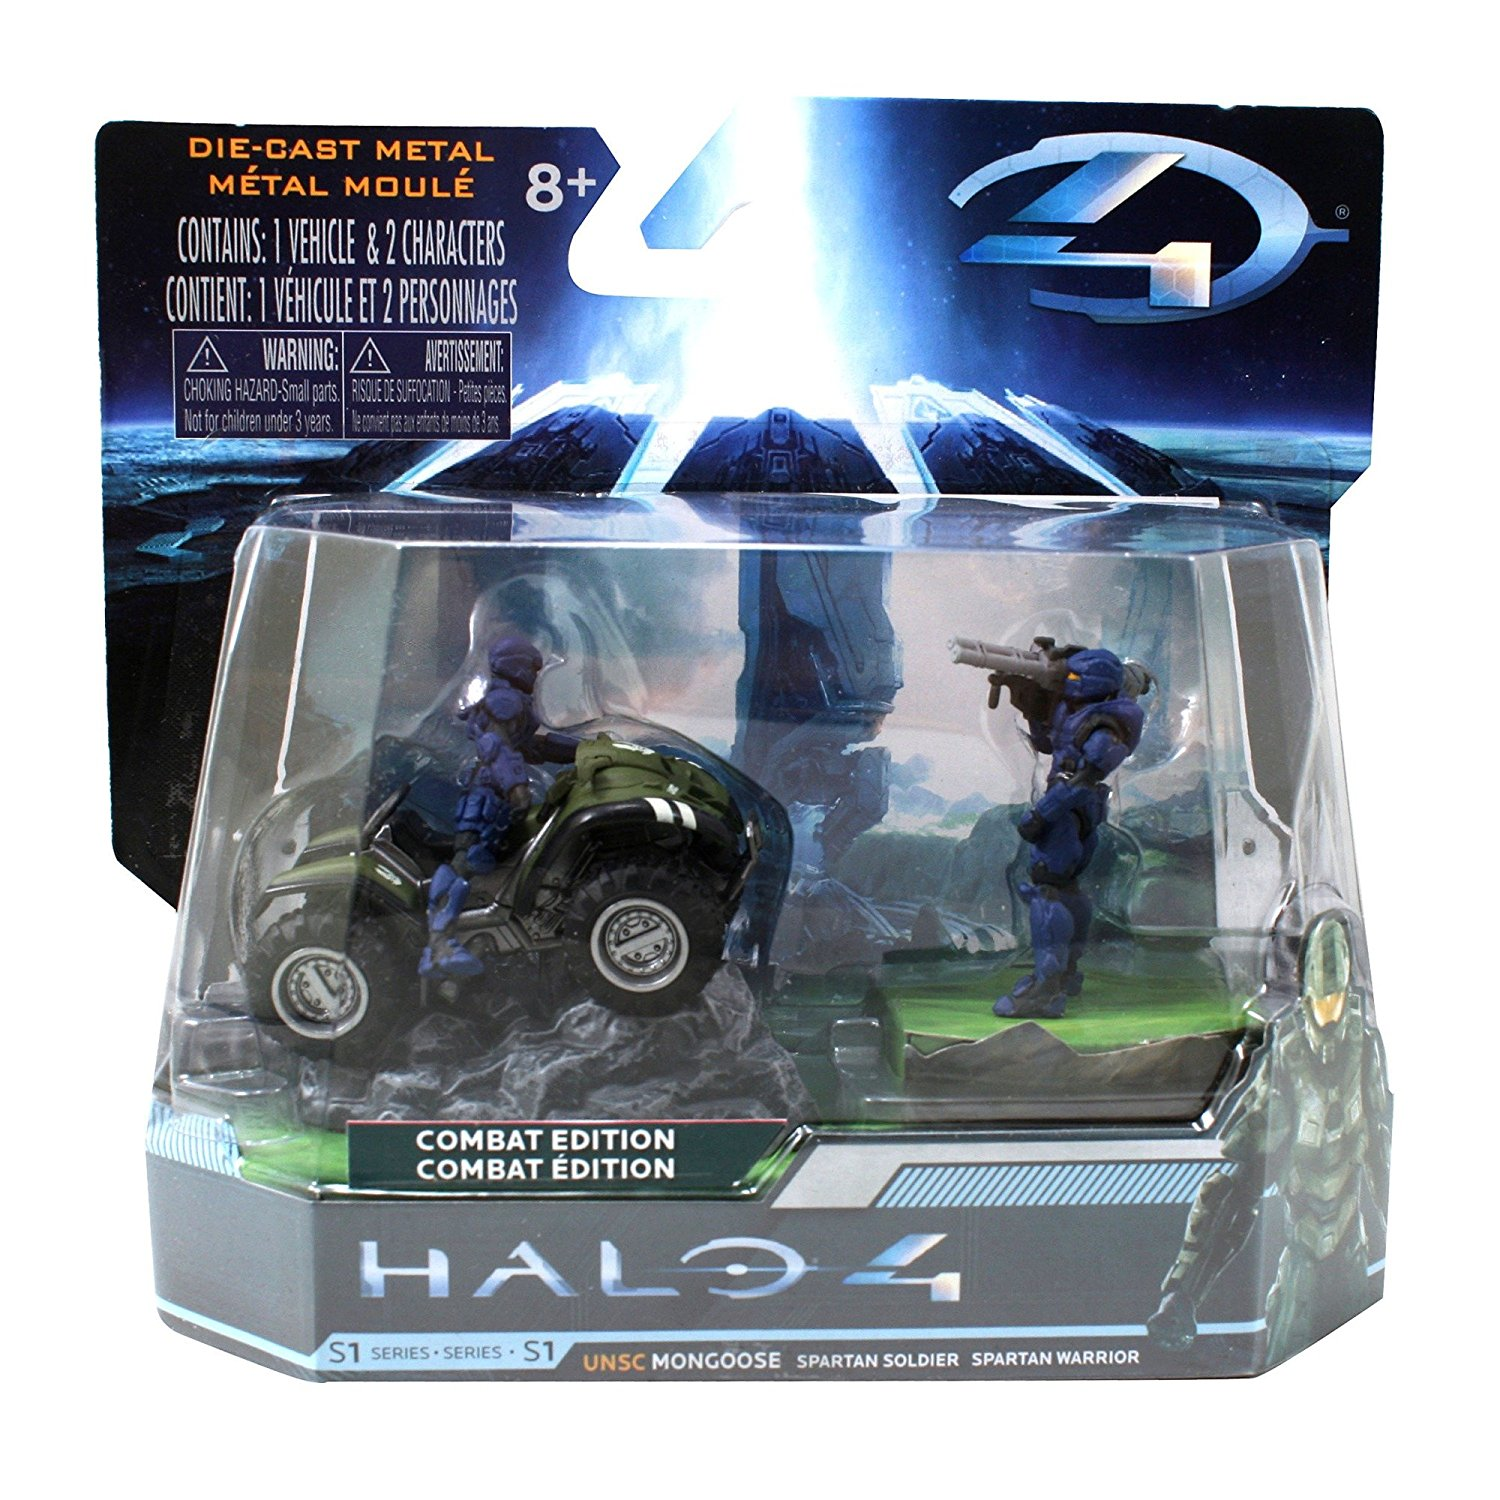 "Combat Edition: 2.8"" UNSC Mongoose with Blue Spartan Soldier and Warrior., Official Licensed Product By Halo 4"